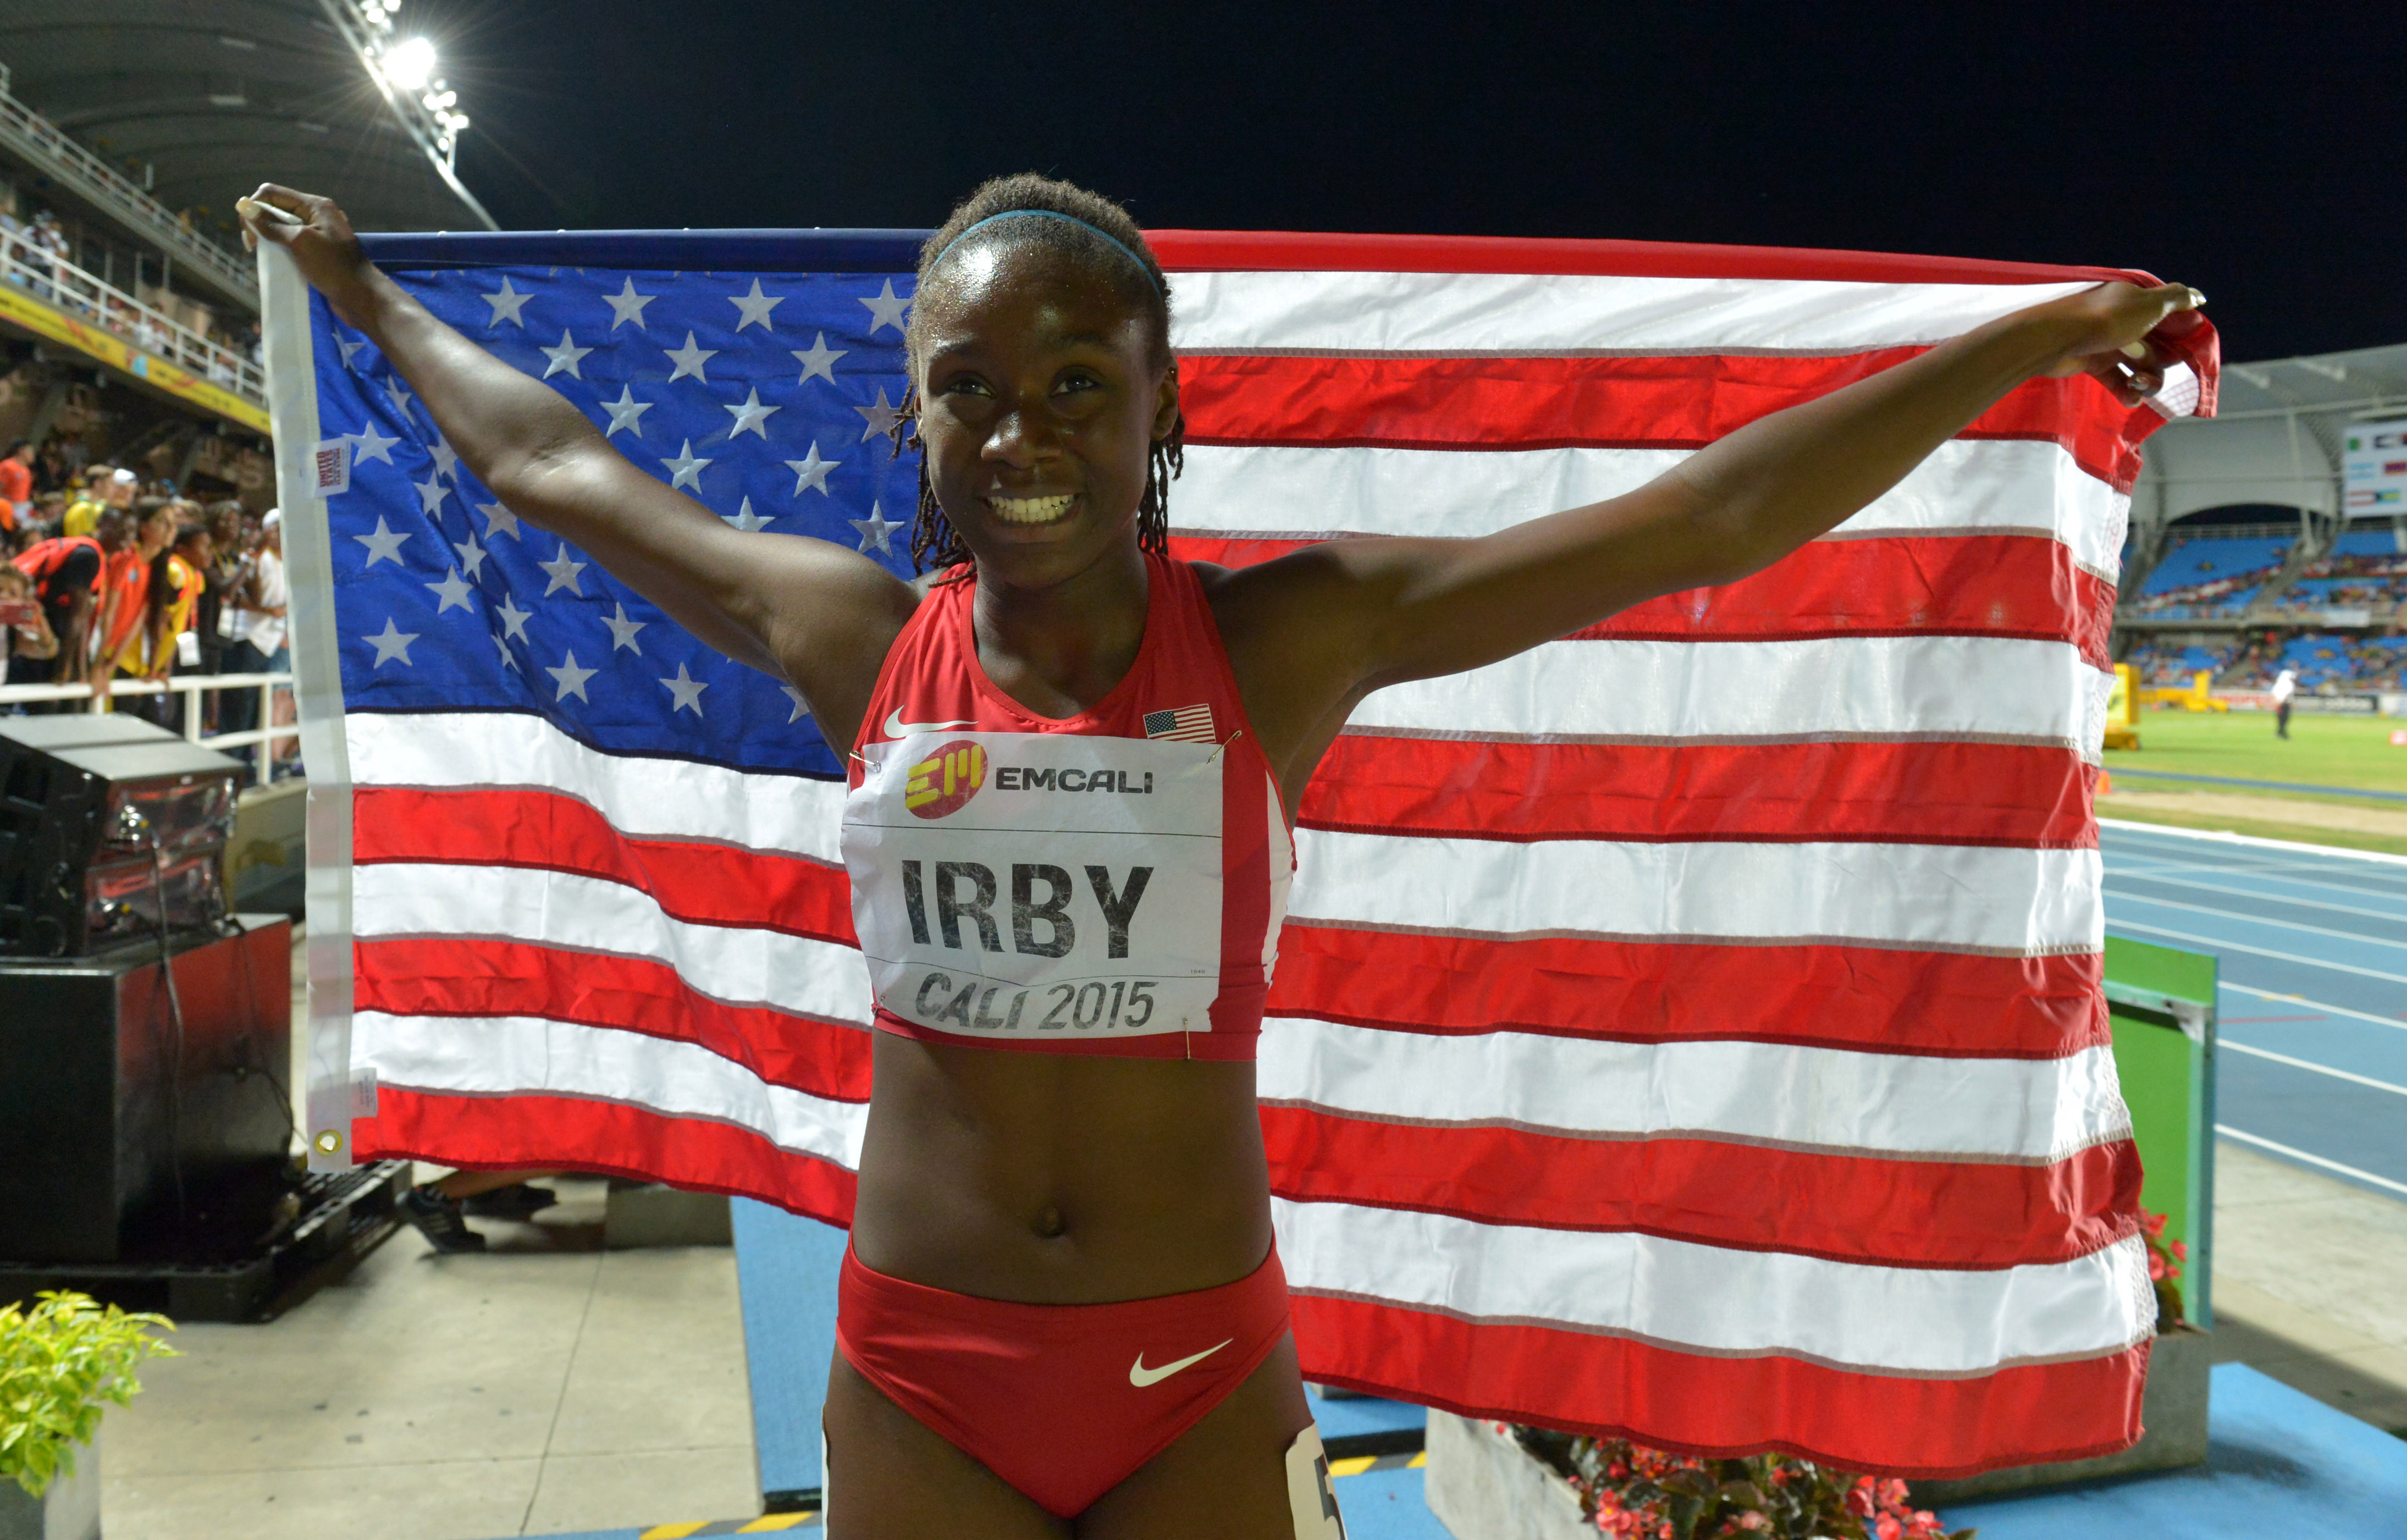 Lynna Irby (USA) poses with a United States flag after finishing second in the womens 400 meters (Photo: Kirby Lee, USA TODAY Sports)